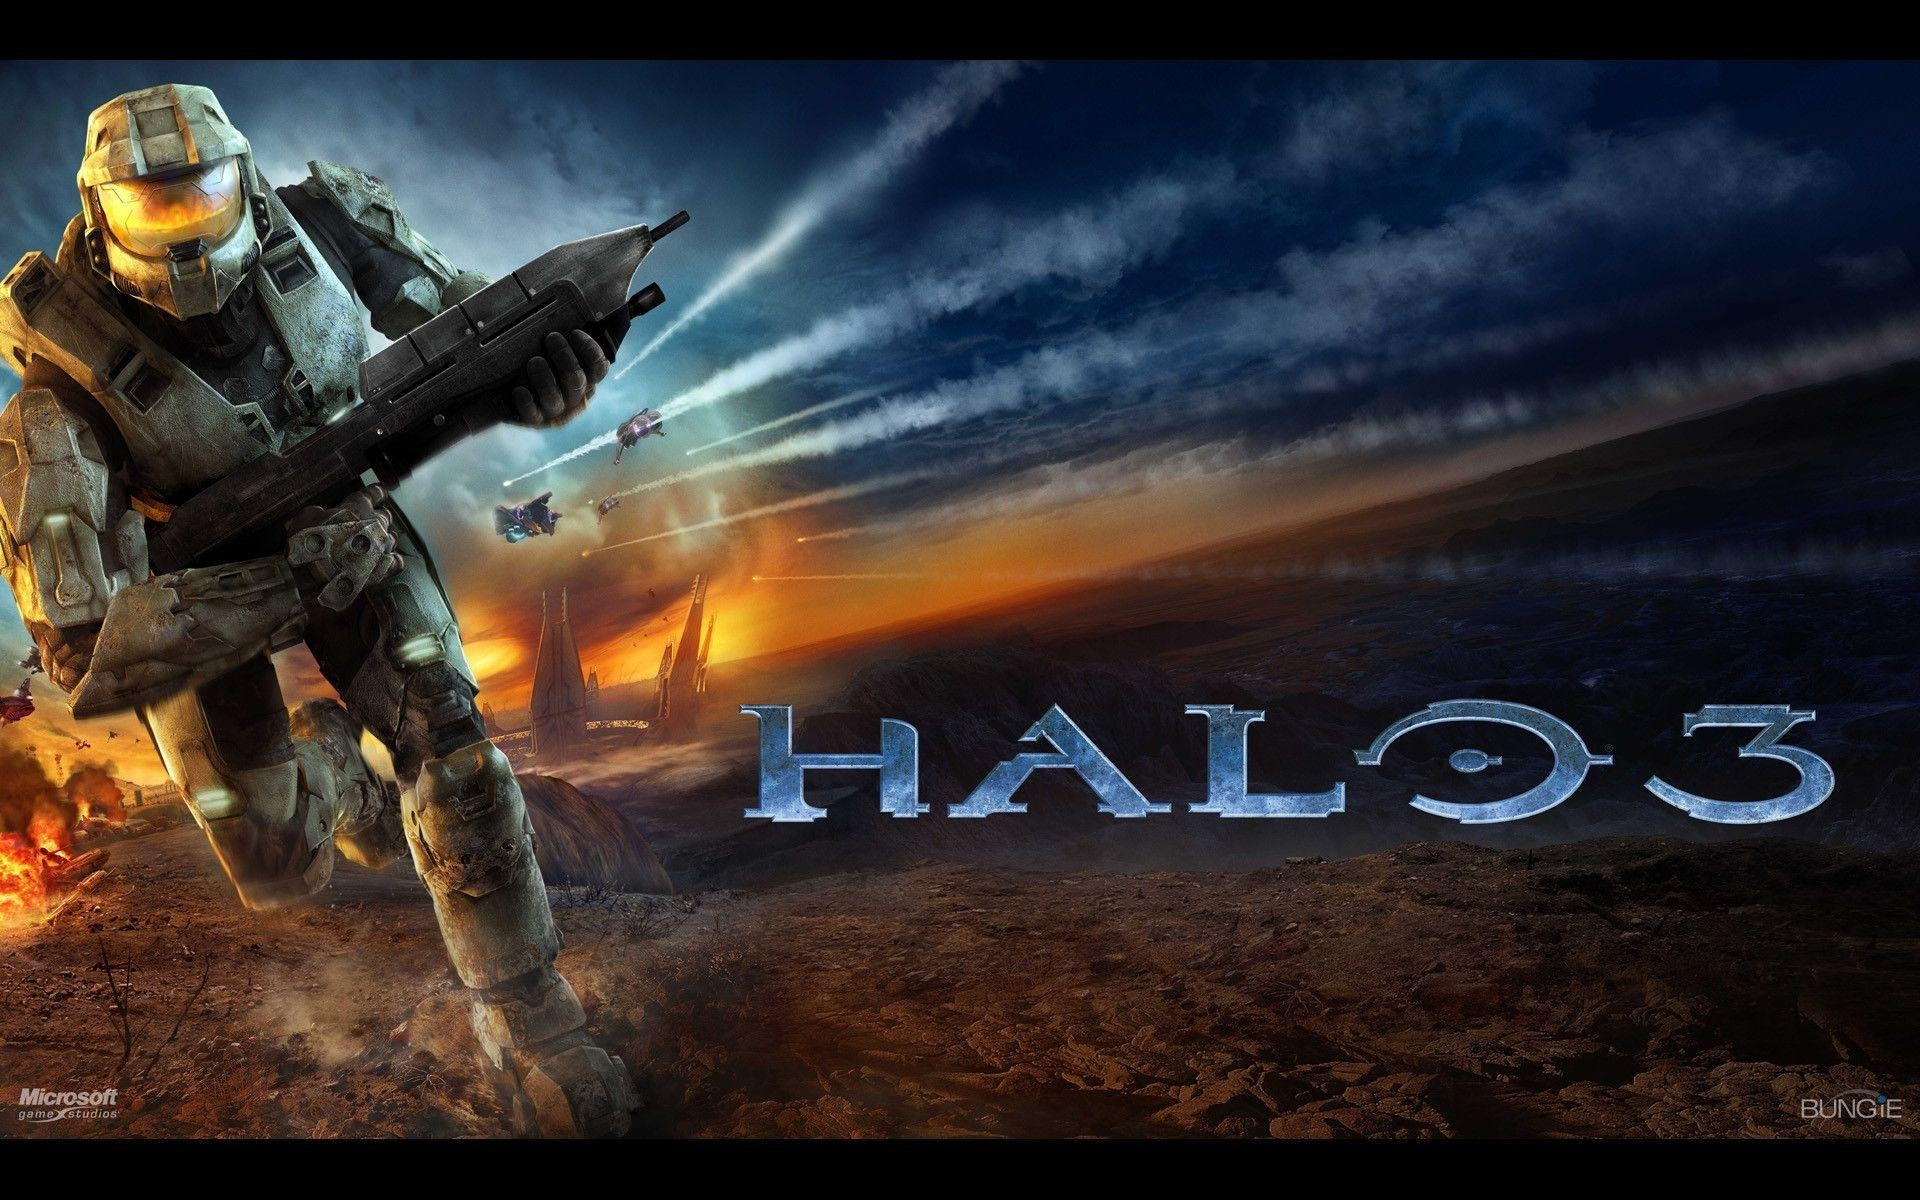 halo 3 backgrounds - wallpaper cave